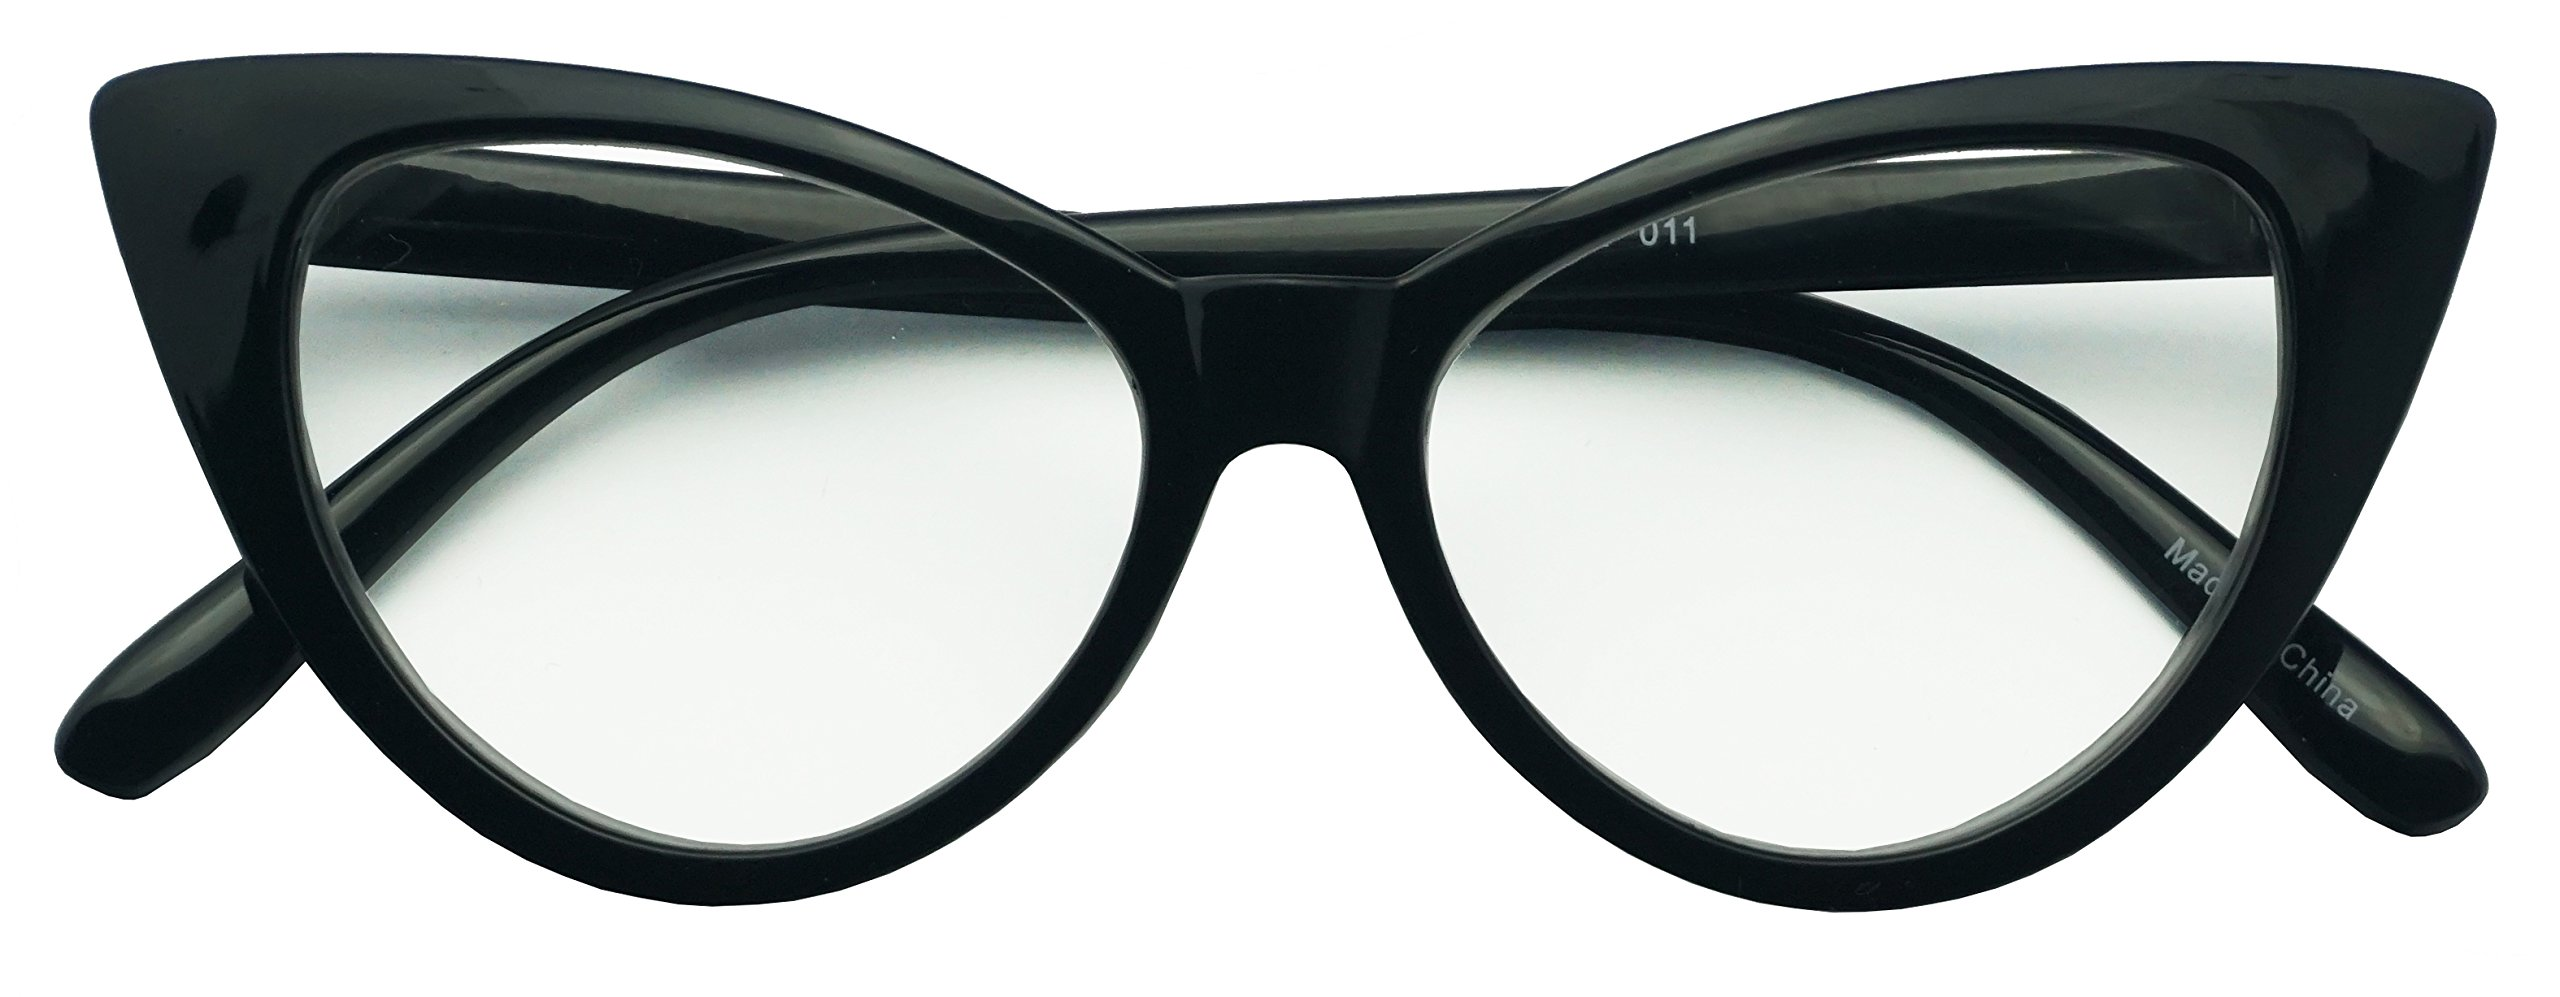 50mm Round Pointed Cat Eye Rx Prescription Magnifying Reading Readers Glasses for Women (Black, 1.75)